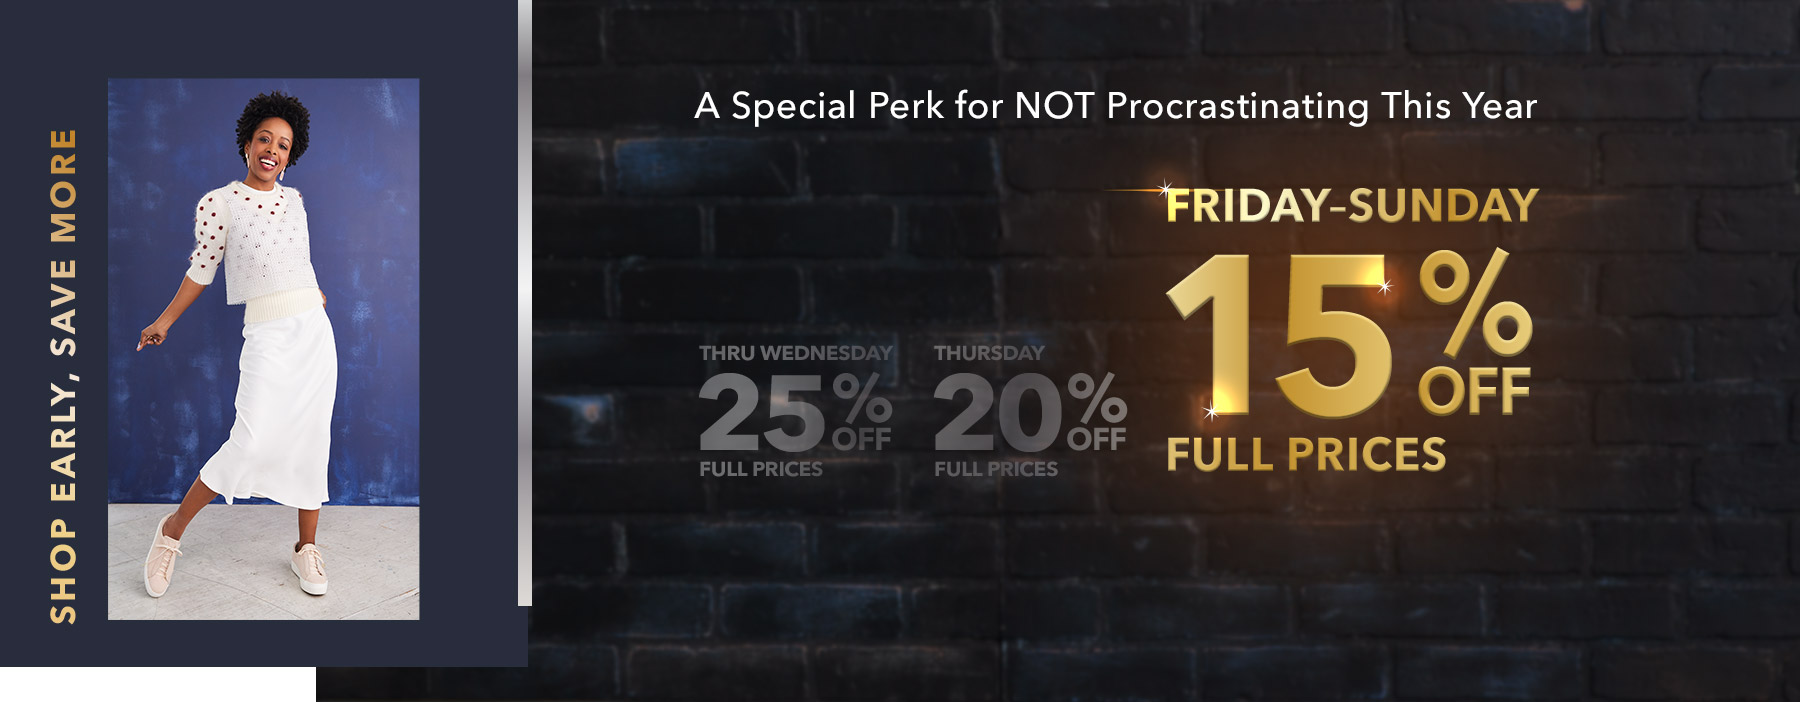 a Special Perk for NOT Procrastinating This Year | Friday through Sunday - 15% off full prices.